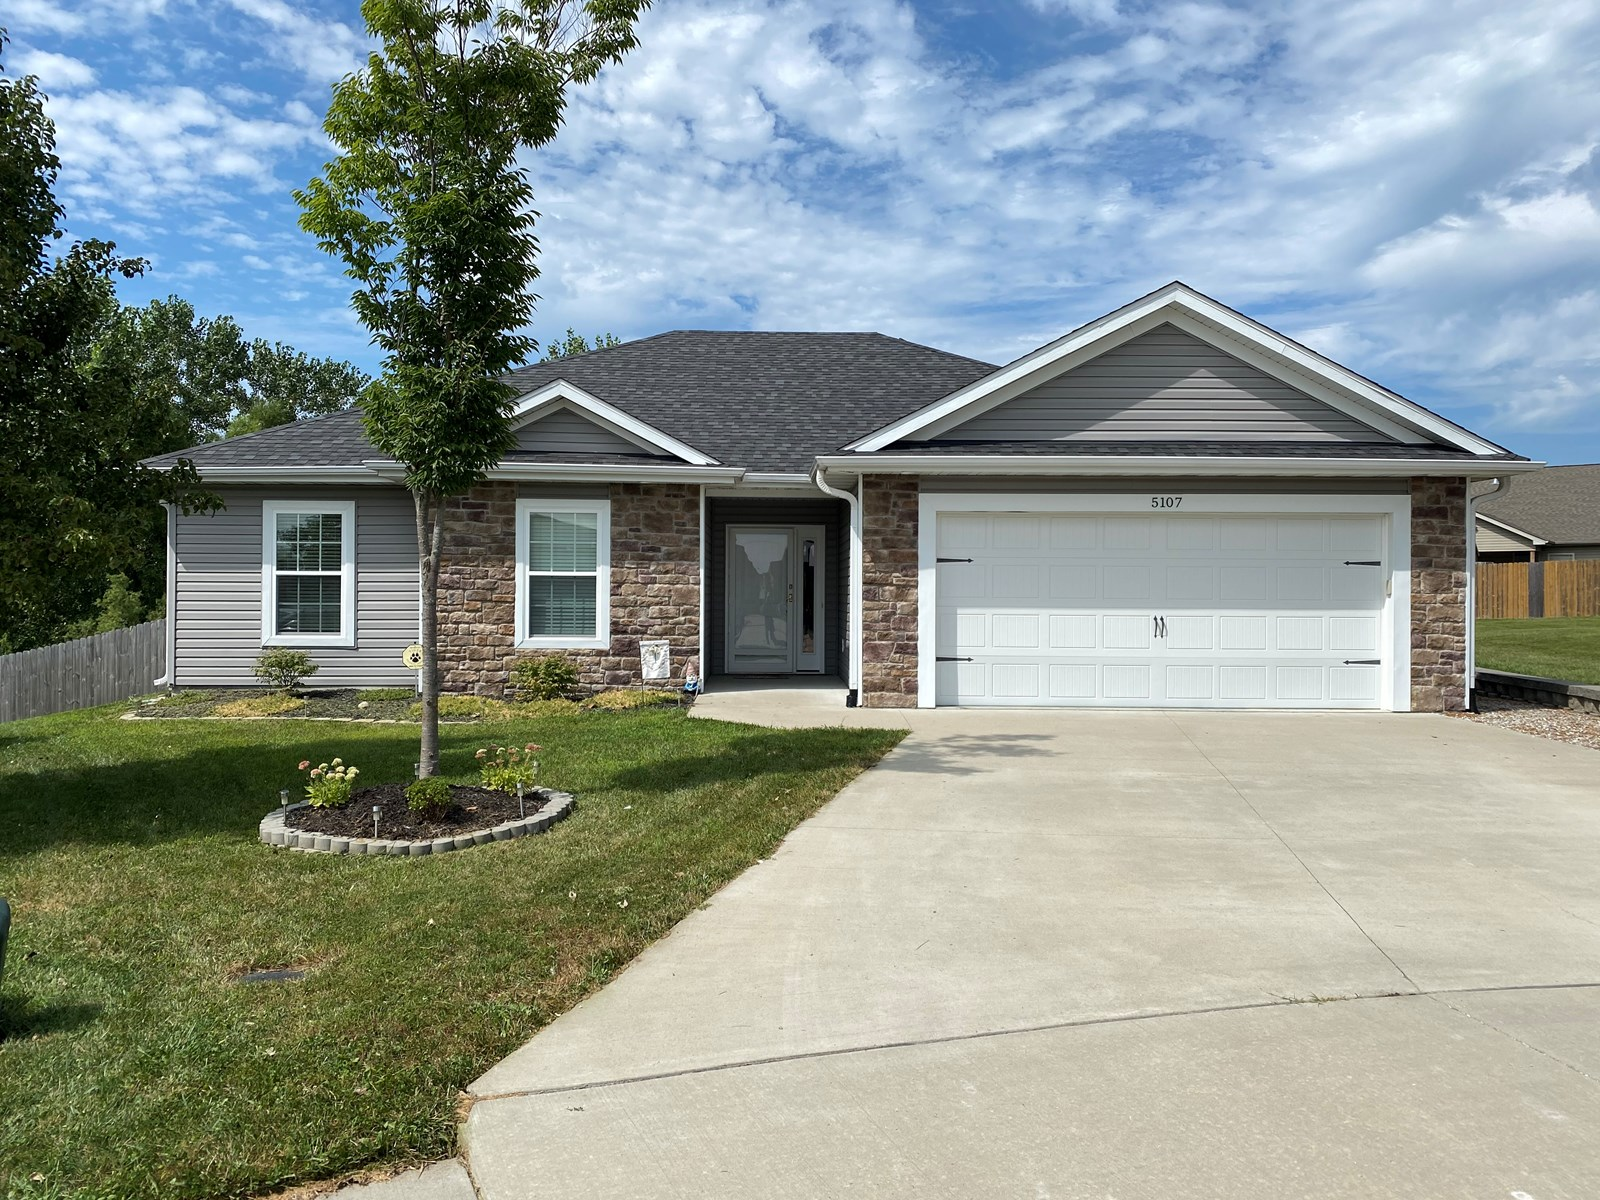 3 Bedroom, 2 Bathroom Home in Columbia, MO